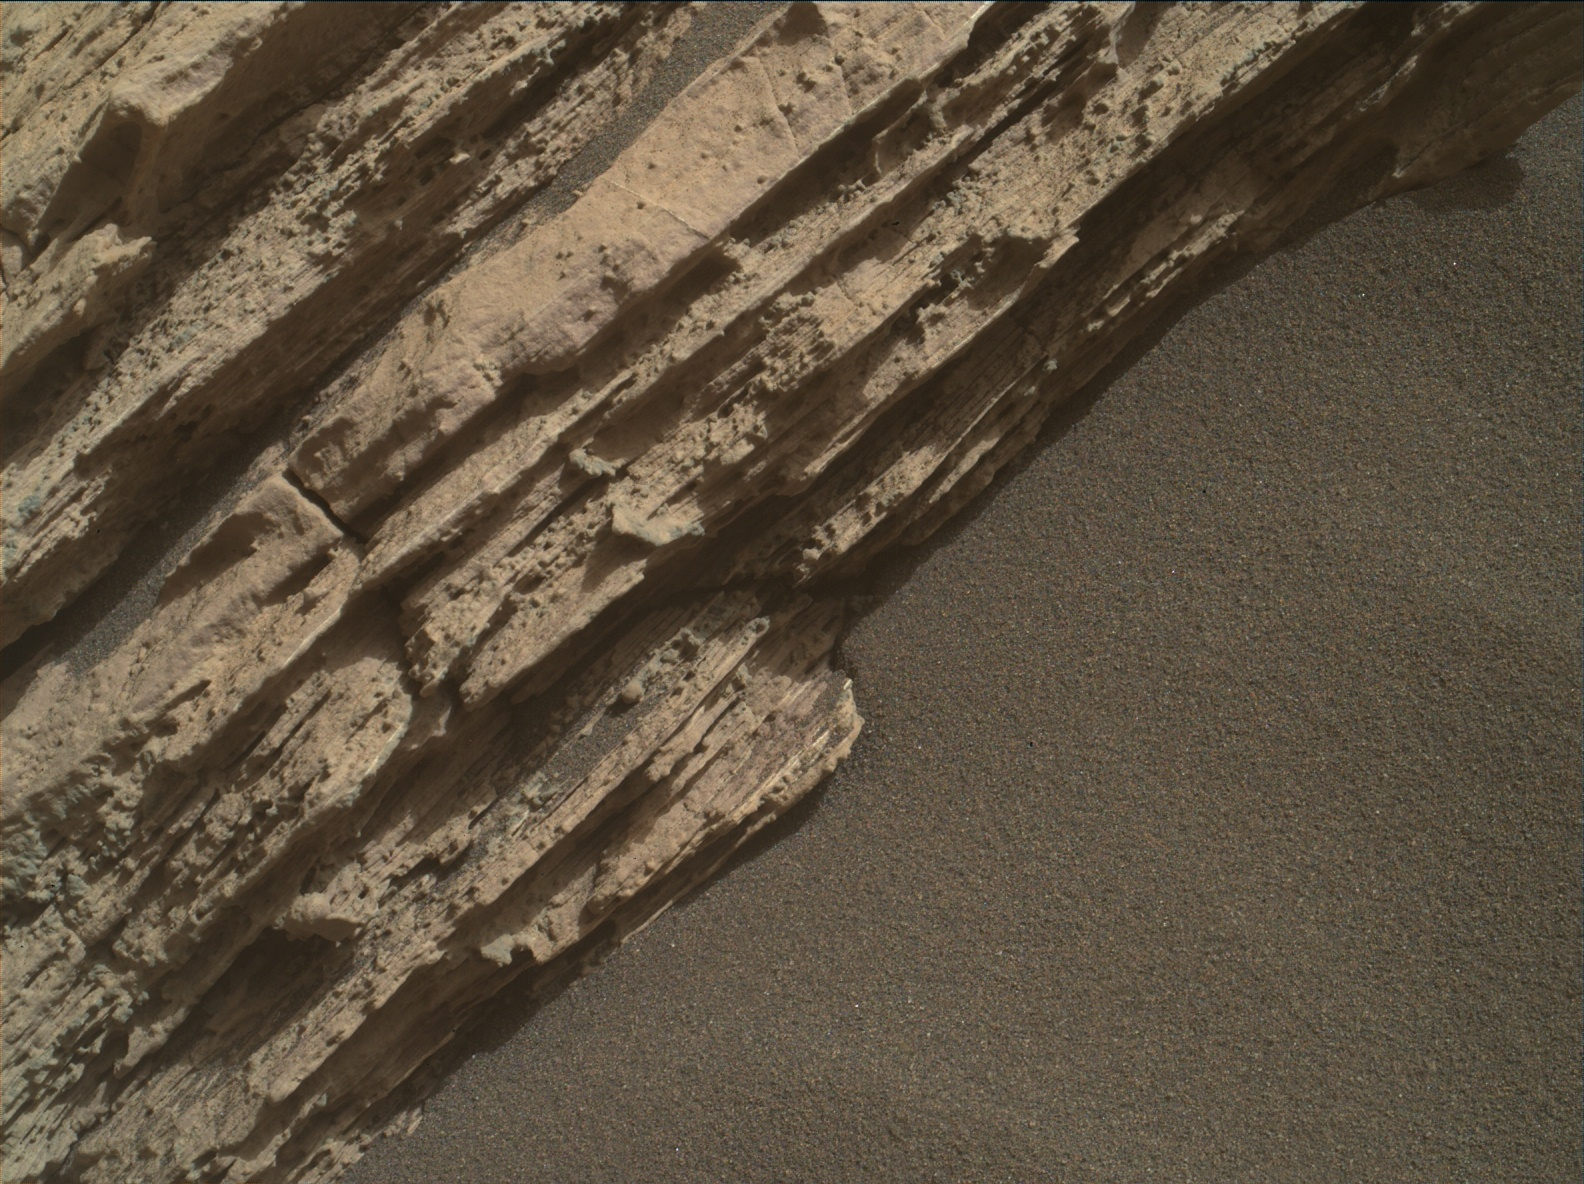 Nasa's Mars rover Curiosity acquired this image using its Mars Hand Lens Imager (MAHLI) on Sol 2586